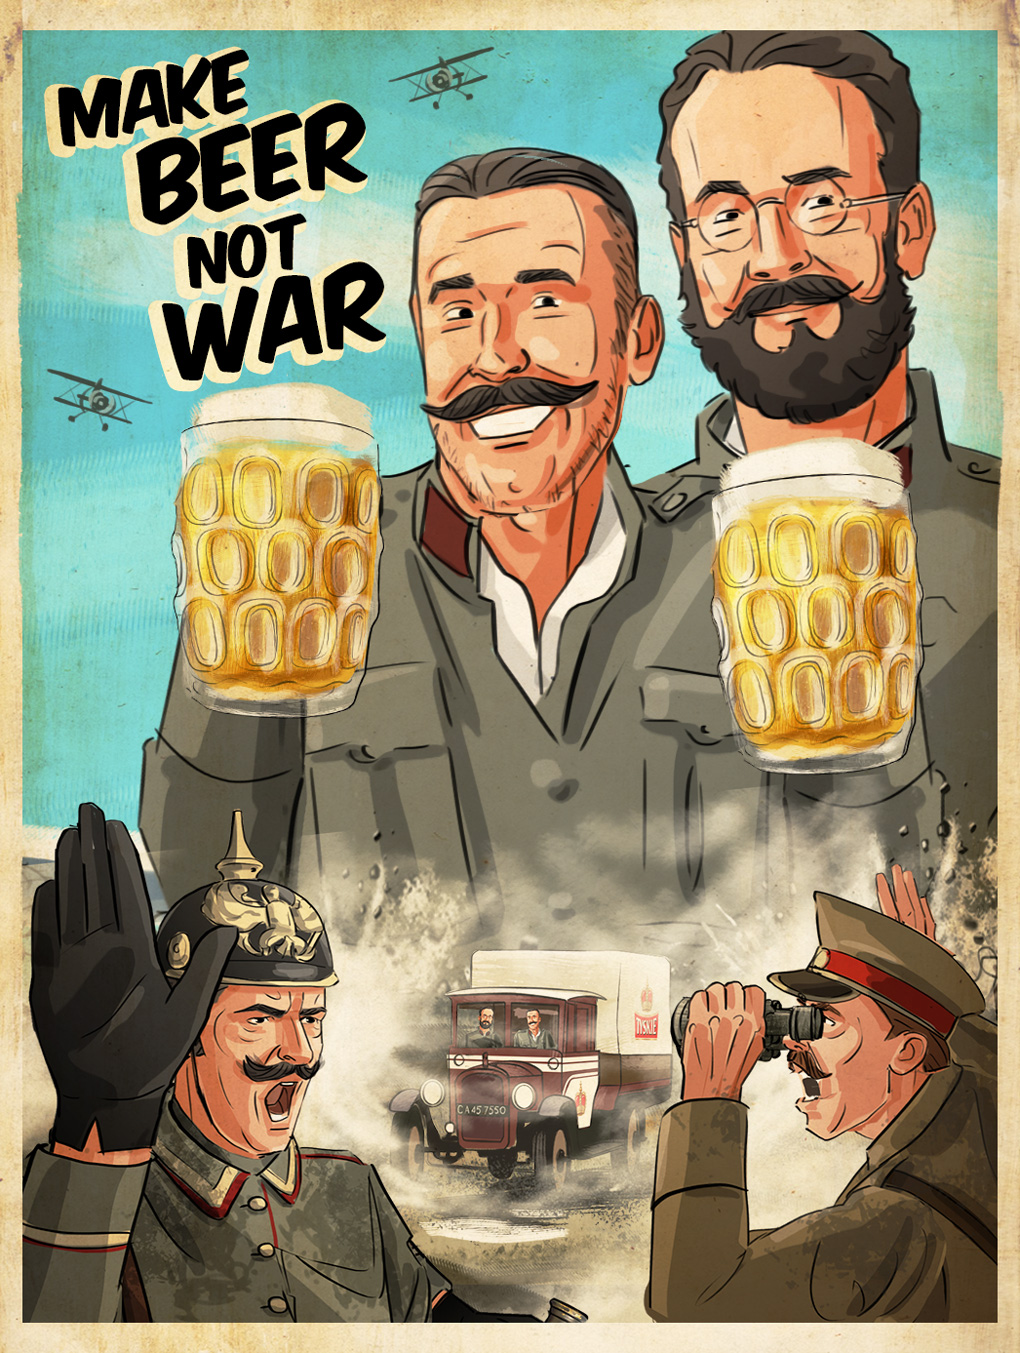 beer oktoberfest soldiers ww1 deserters poster illustration advertising